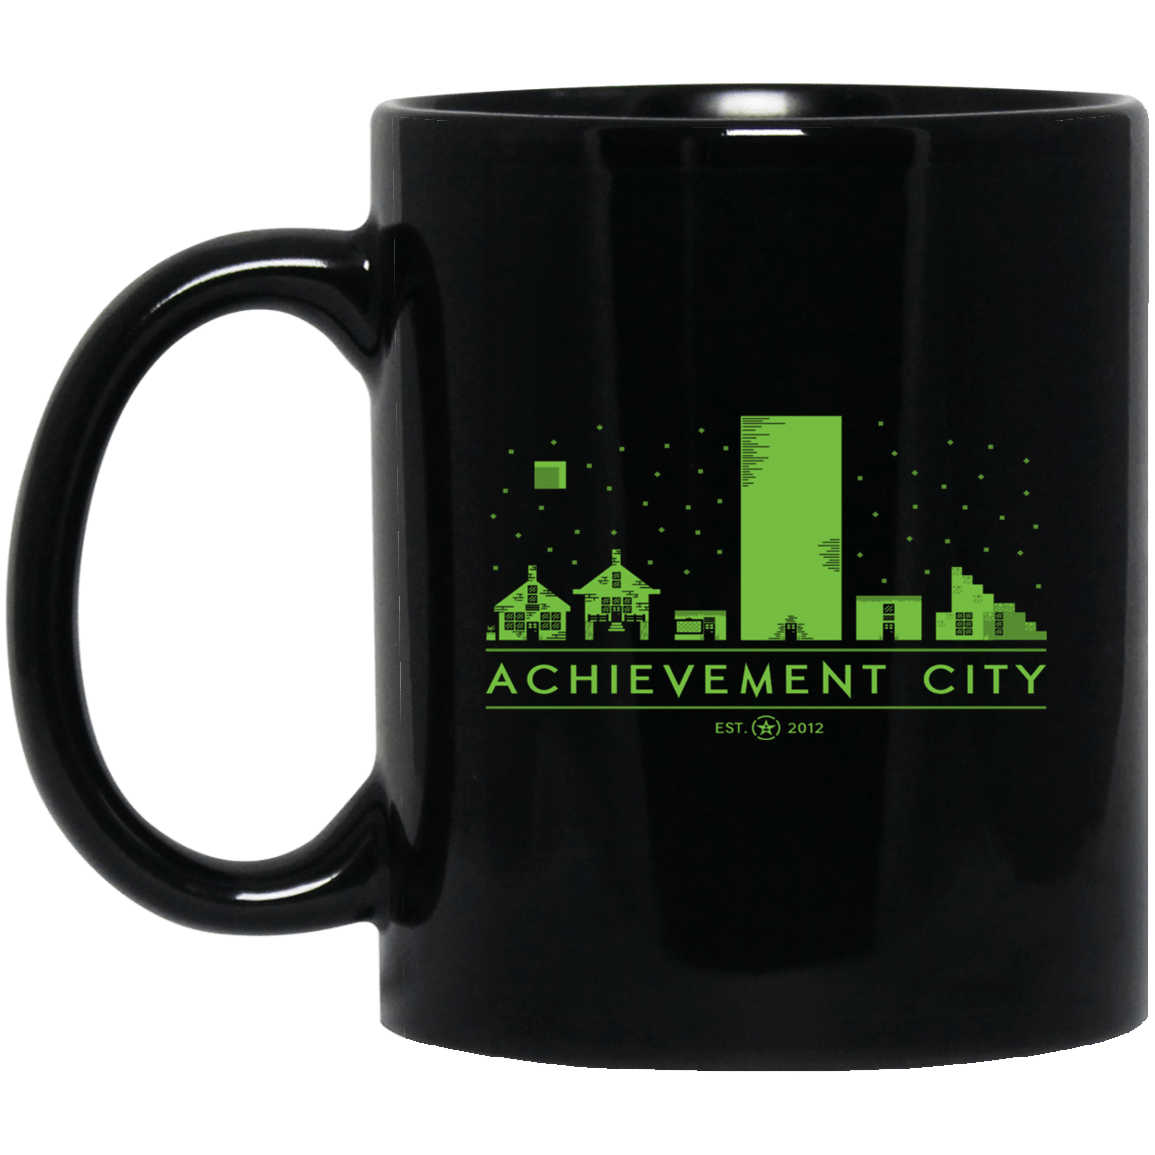 Achievement Hunter Achievement City Mug 1065-10181-89726647-49307 - Tee Ript